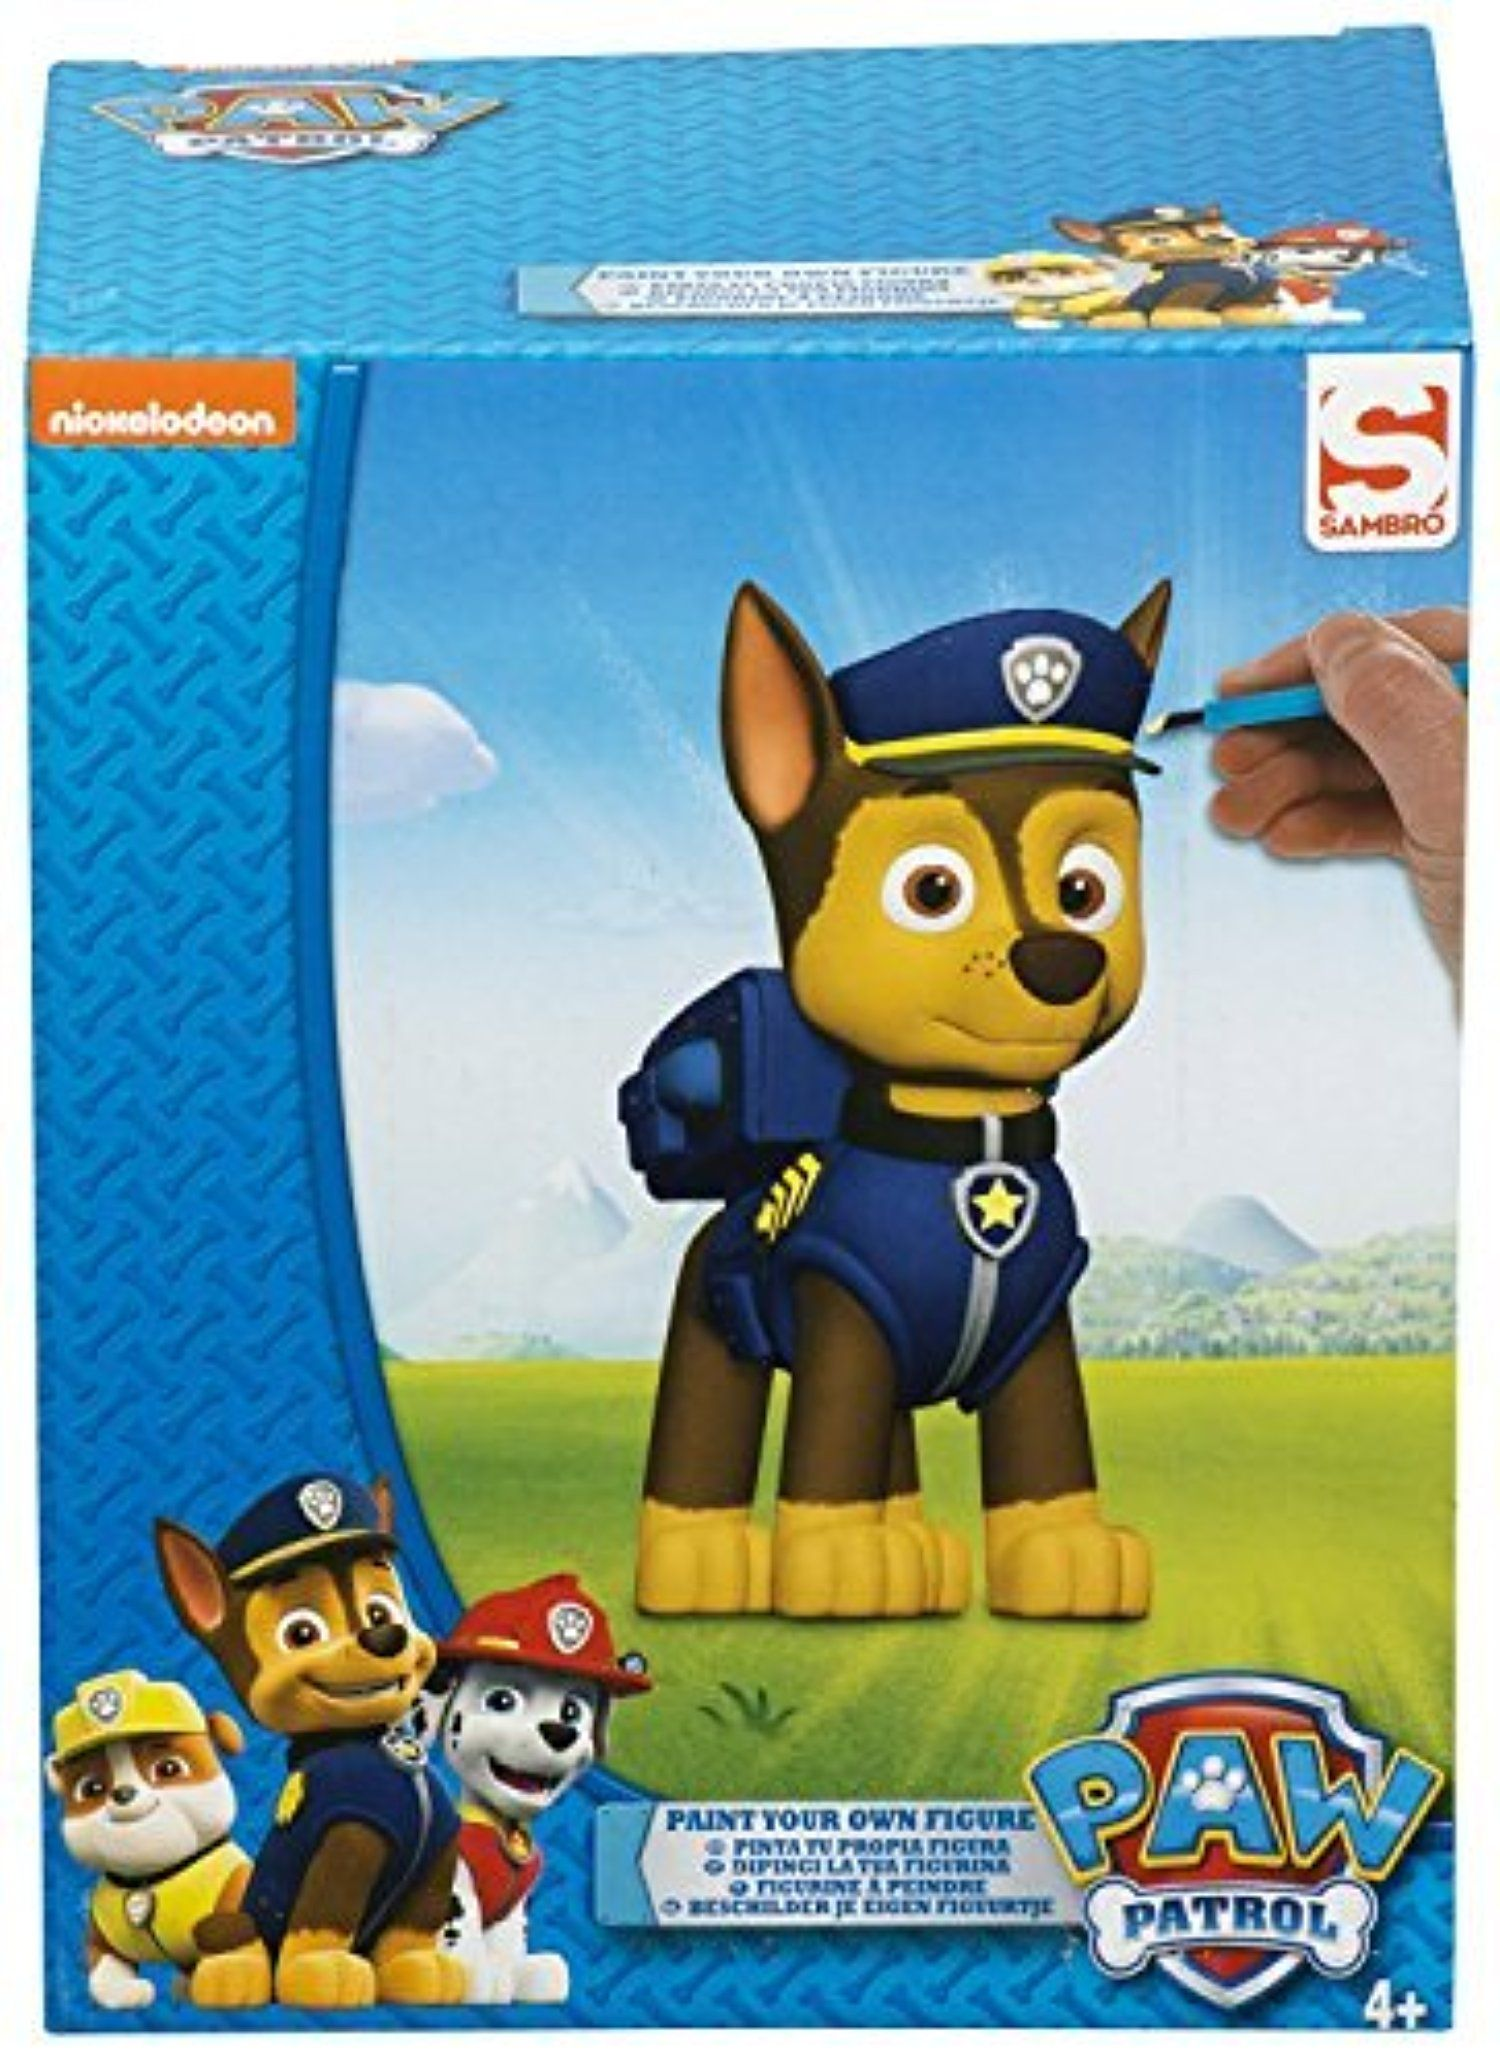 Paw Patrol Paint Your Own Figure Art Painting Craft Chase Brush 5 Paints Gift By Bargains Galore Awesome Products Painting Gift Painting Crafts Art Painting